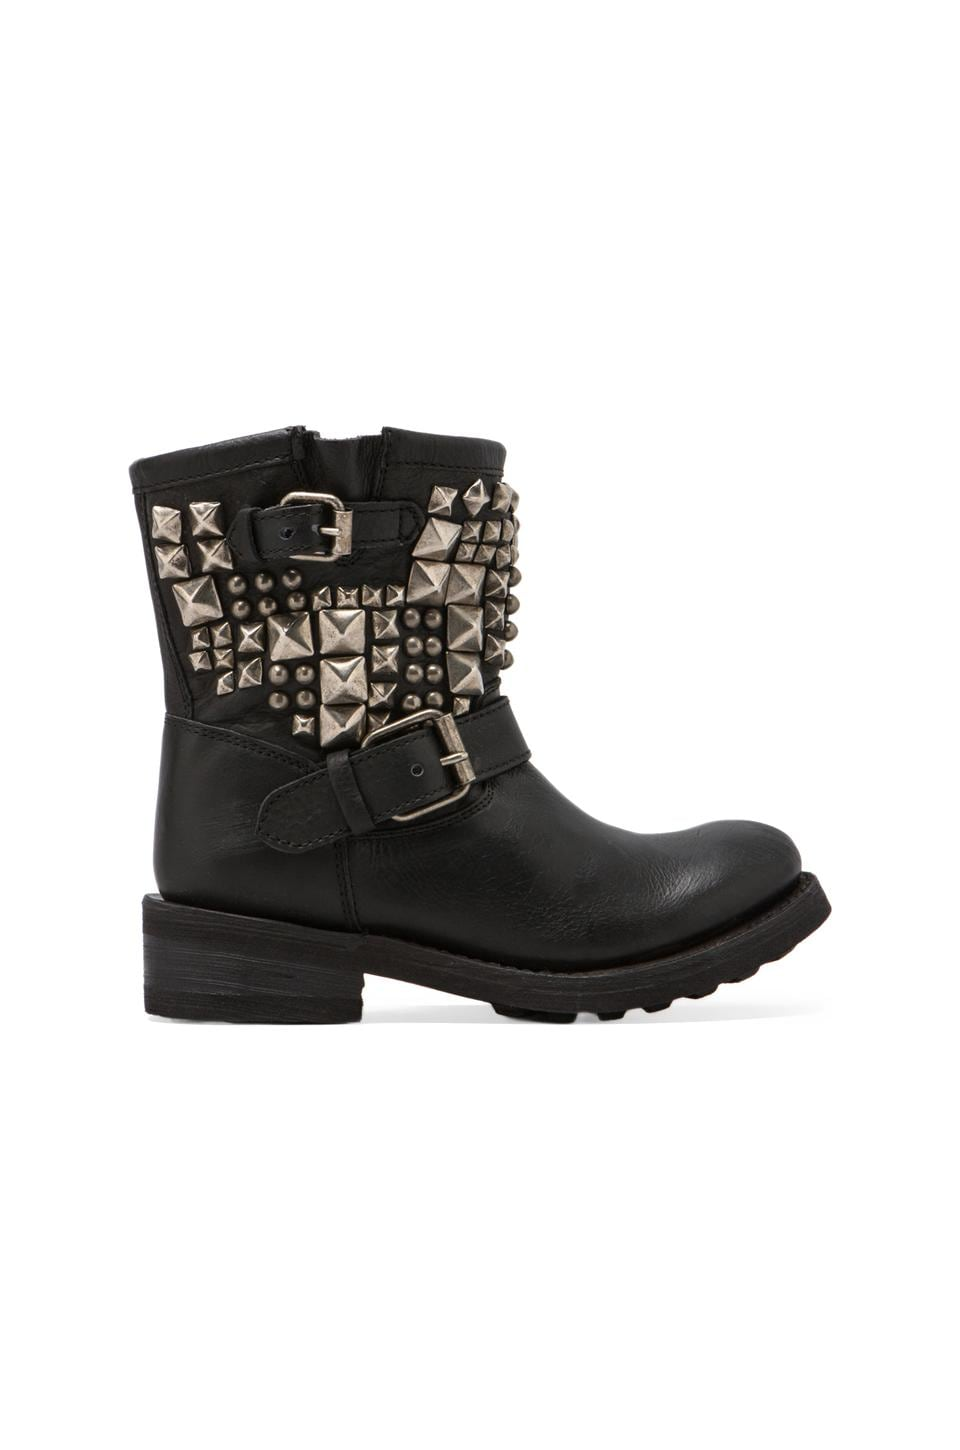 Ash Tyler Ter Boot in Black